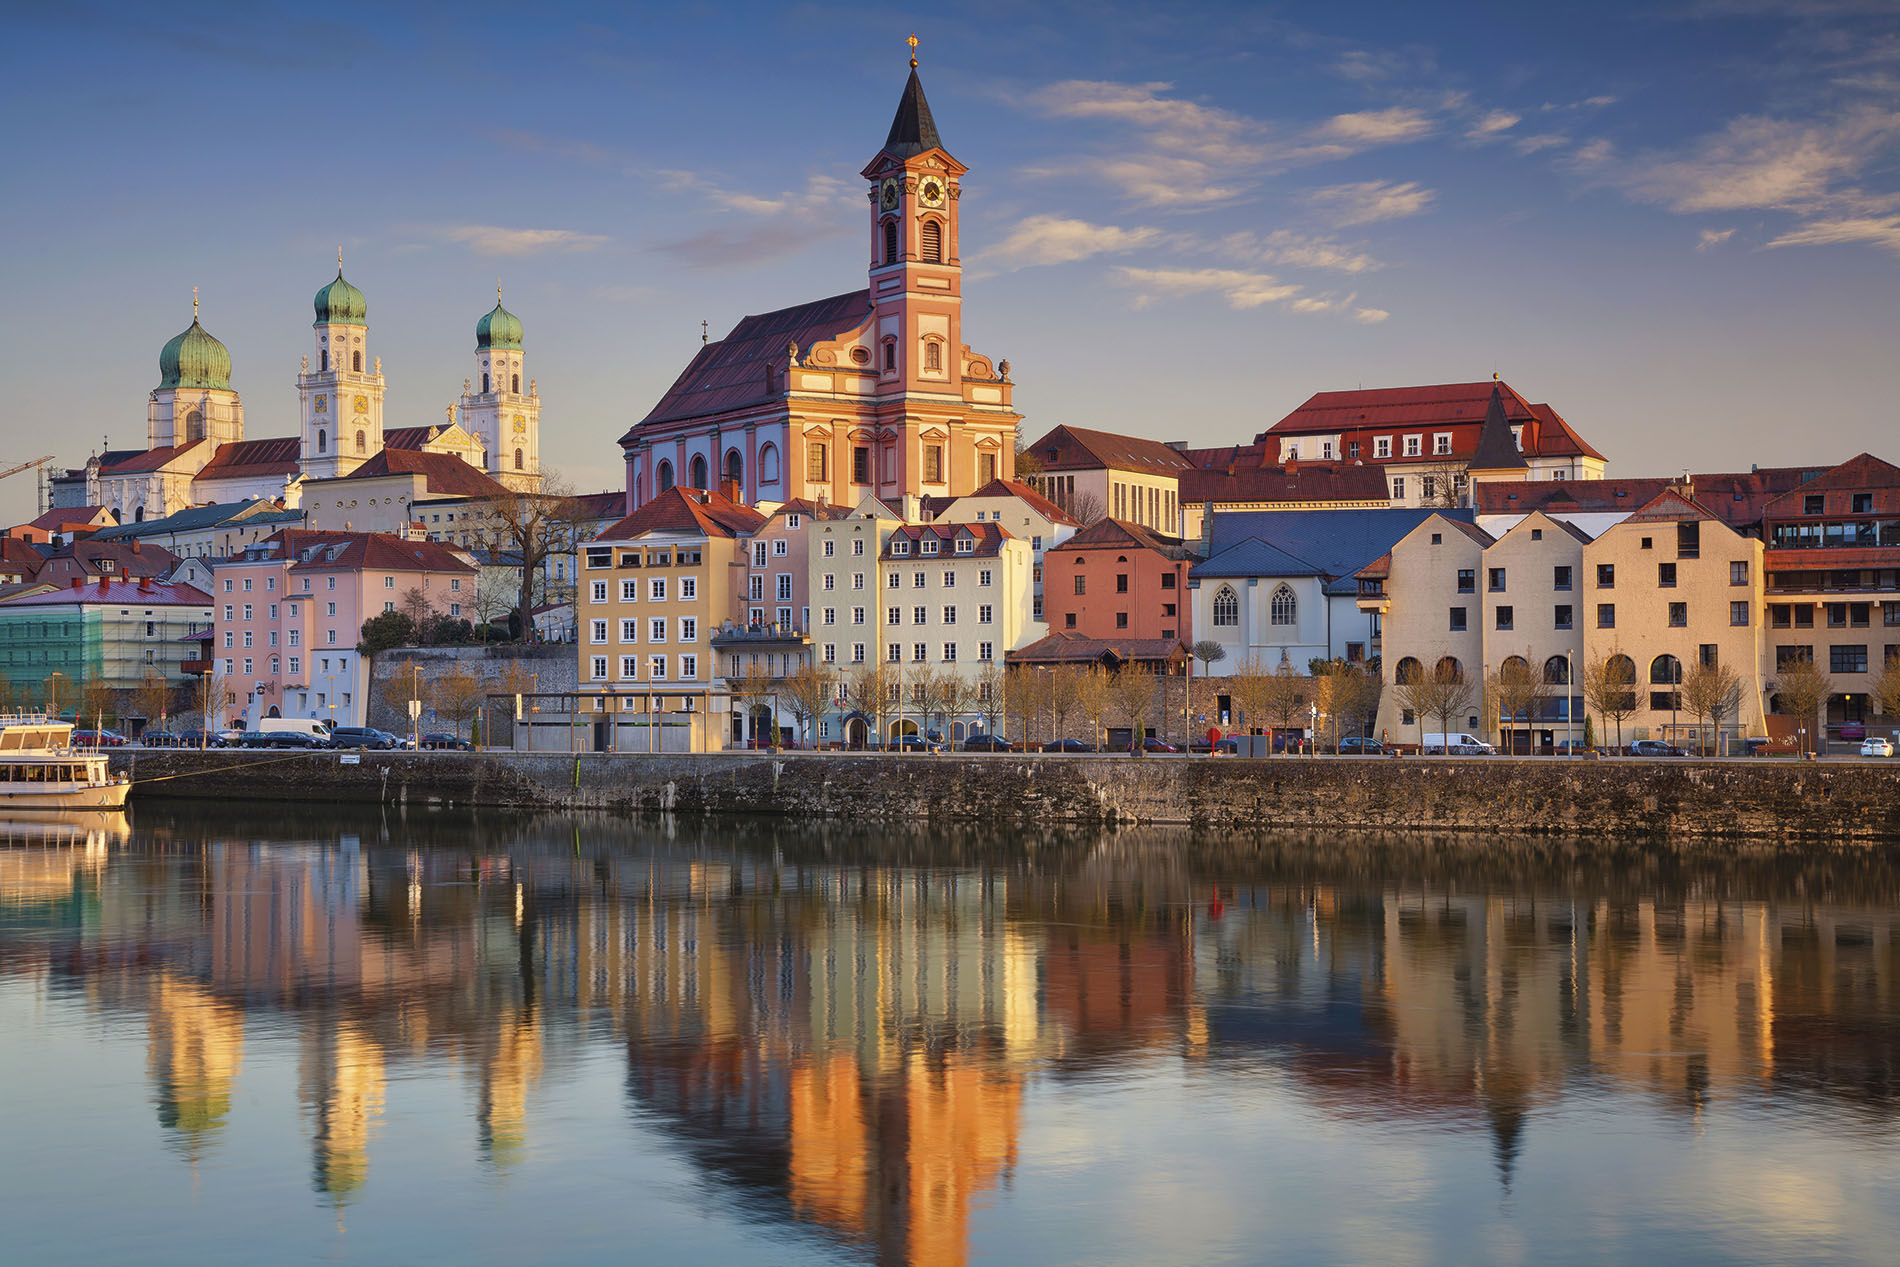 The tranquil waters of Passau, Germany